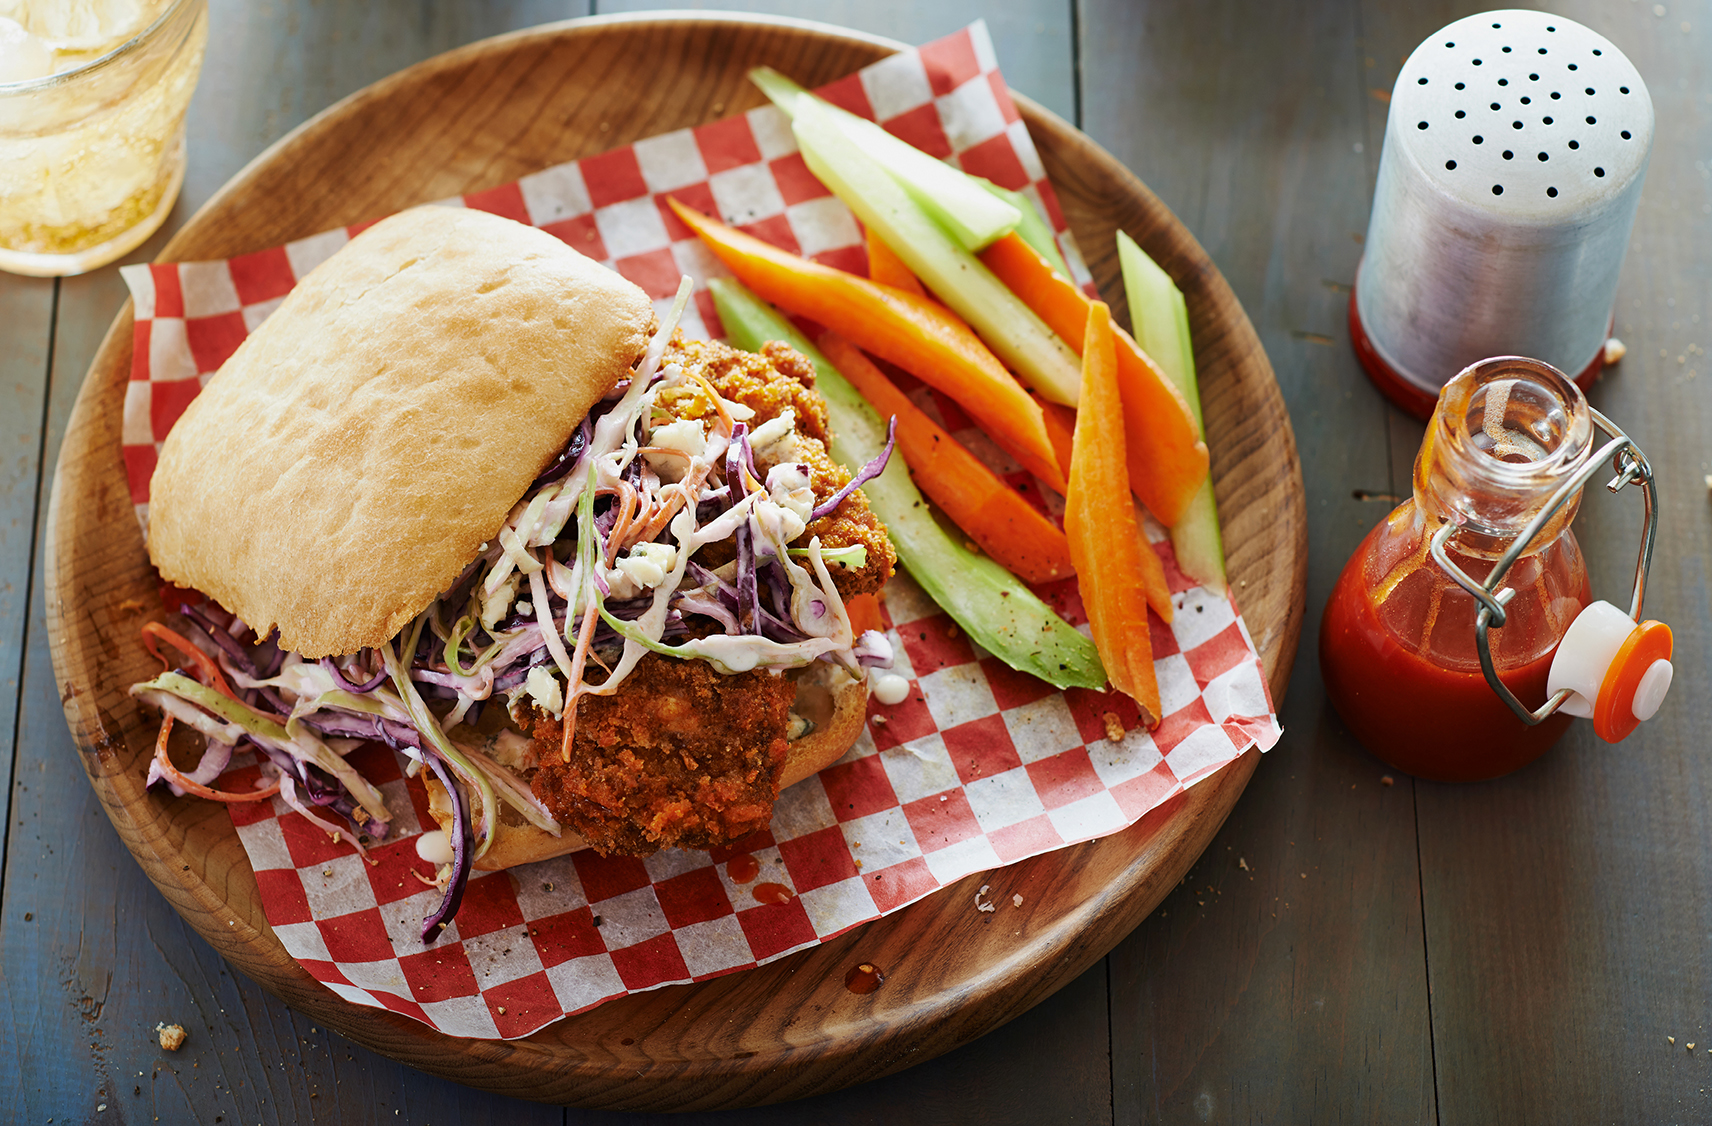 A crispy chicken sandwich on a ciabatta bun with coleslaw by carrot sticks